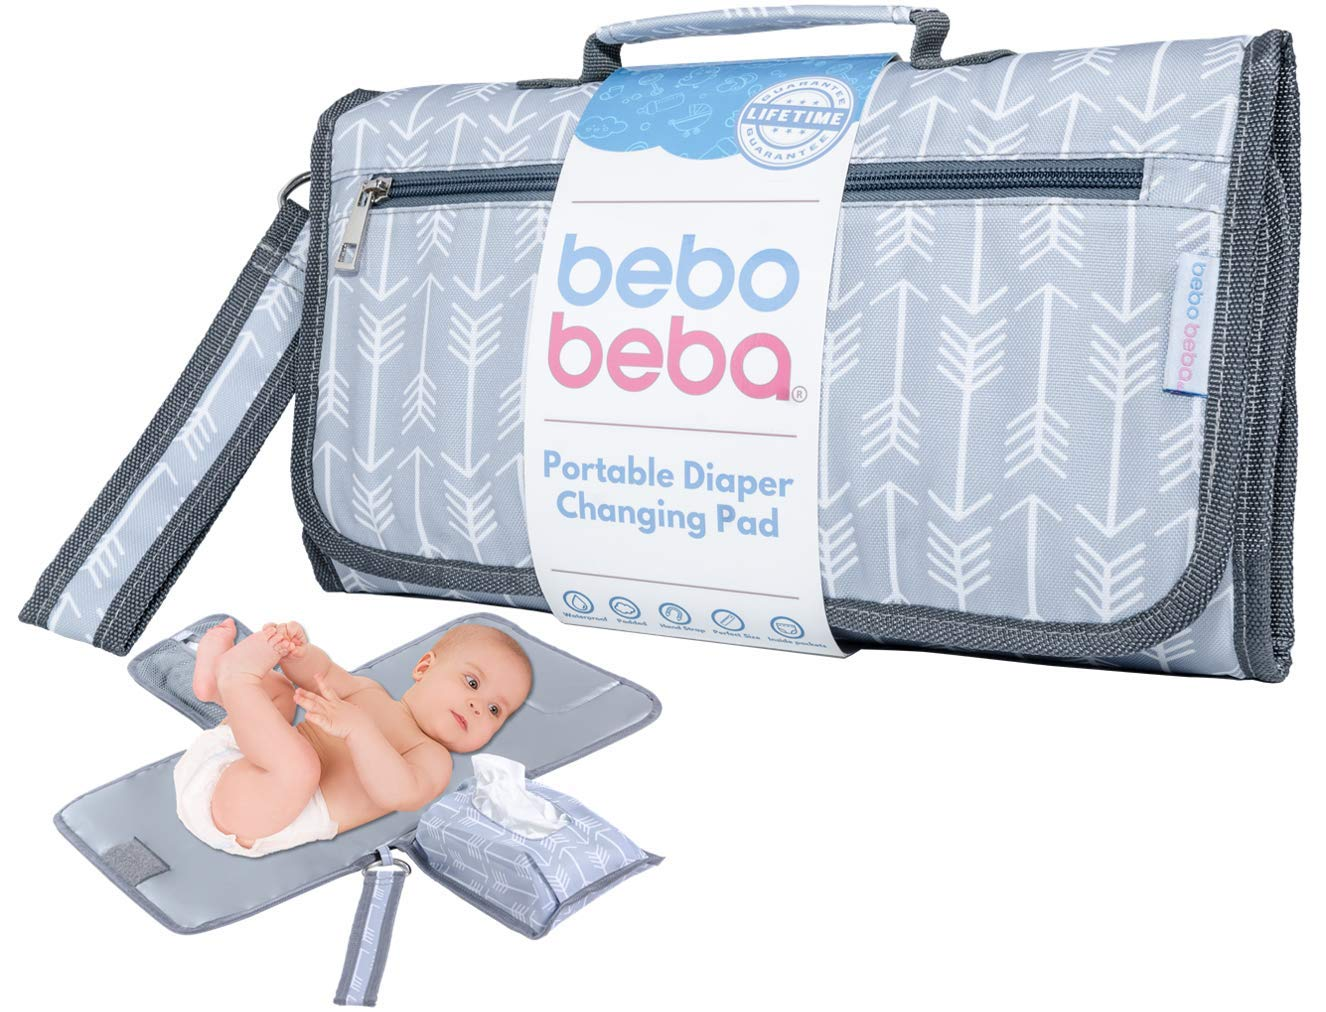 Baby Portable Changing Pad   Waterproof   Foldable Pad with Stroller Strap & Pocket for Diapers & Wipes   Changing Organizer Bag for Toddlers Infants & Newborns   Perfect Baby Shower Gift by bebo beba